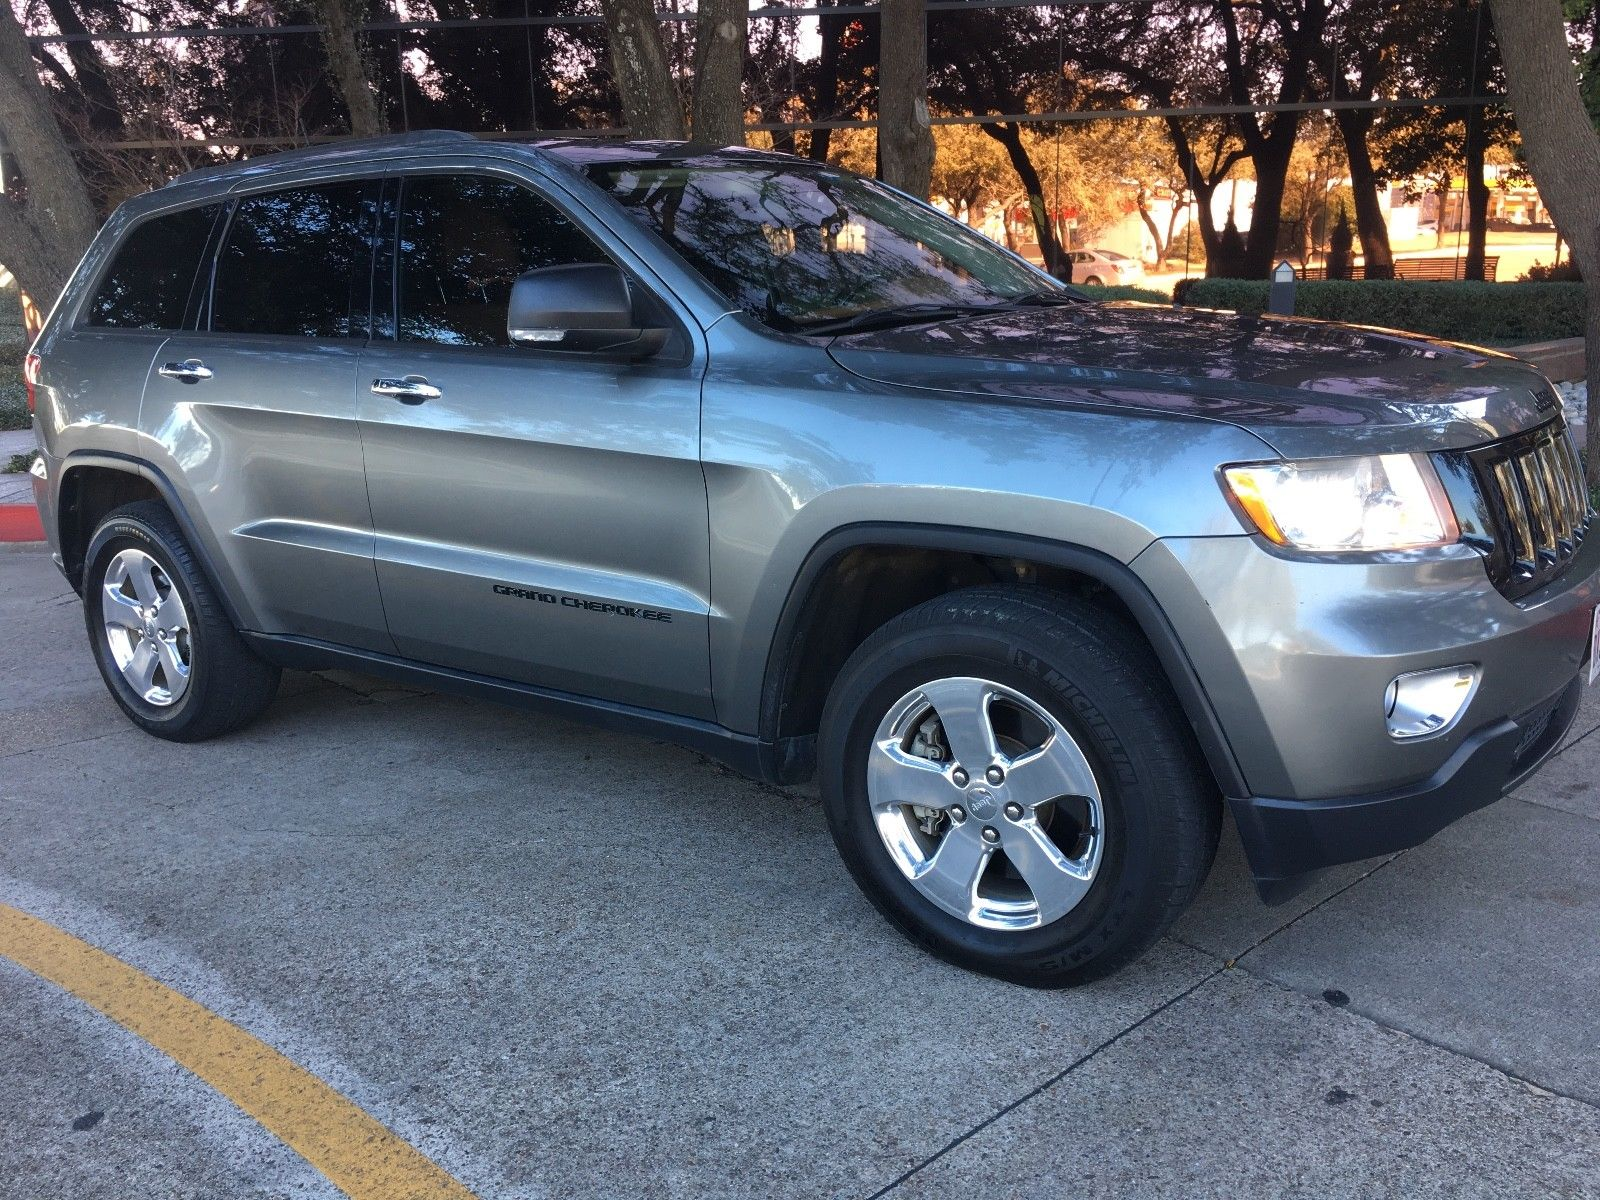 Used 2011 Jeep Grand Cherokee Overland Summit 2011 Jeep Grand Cherokee Overland Summit 4x4 Trail Rated Hemi V8 2017 2018 Is In Stock And For Sale 24carshop Com